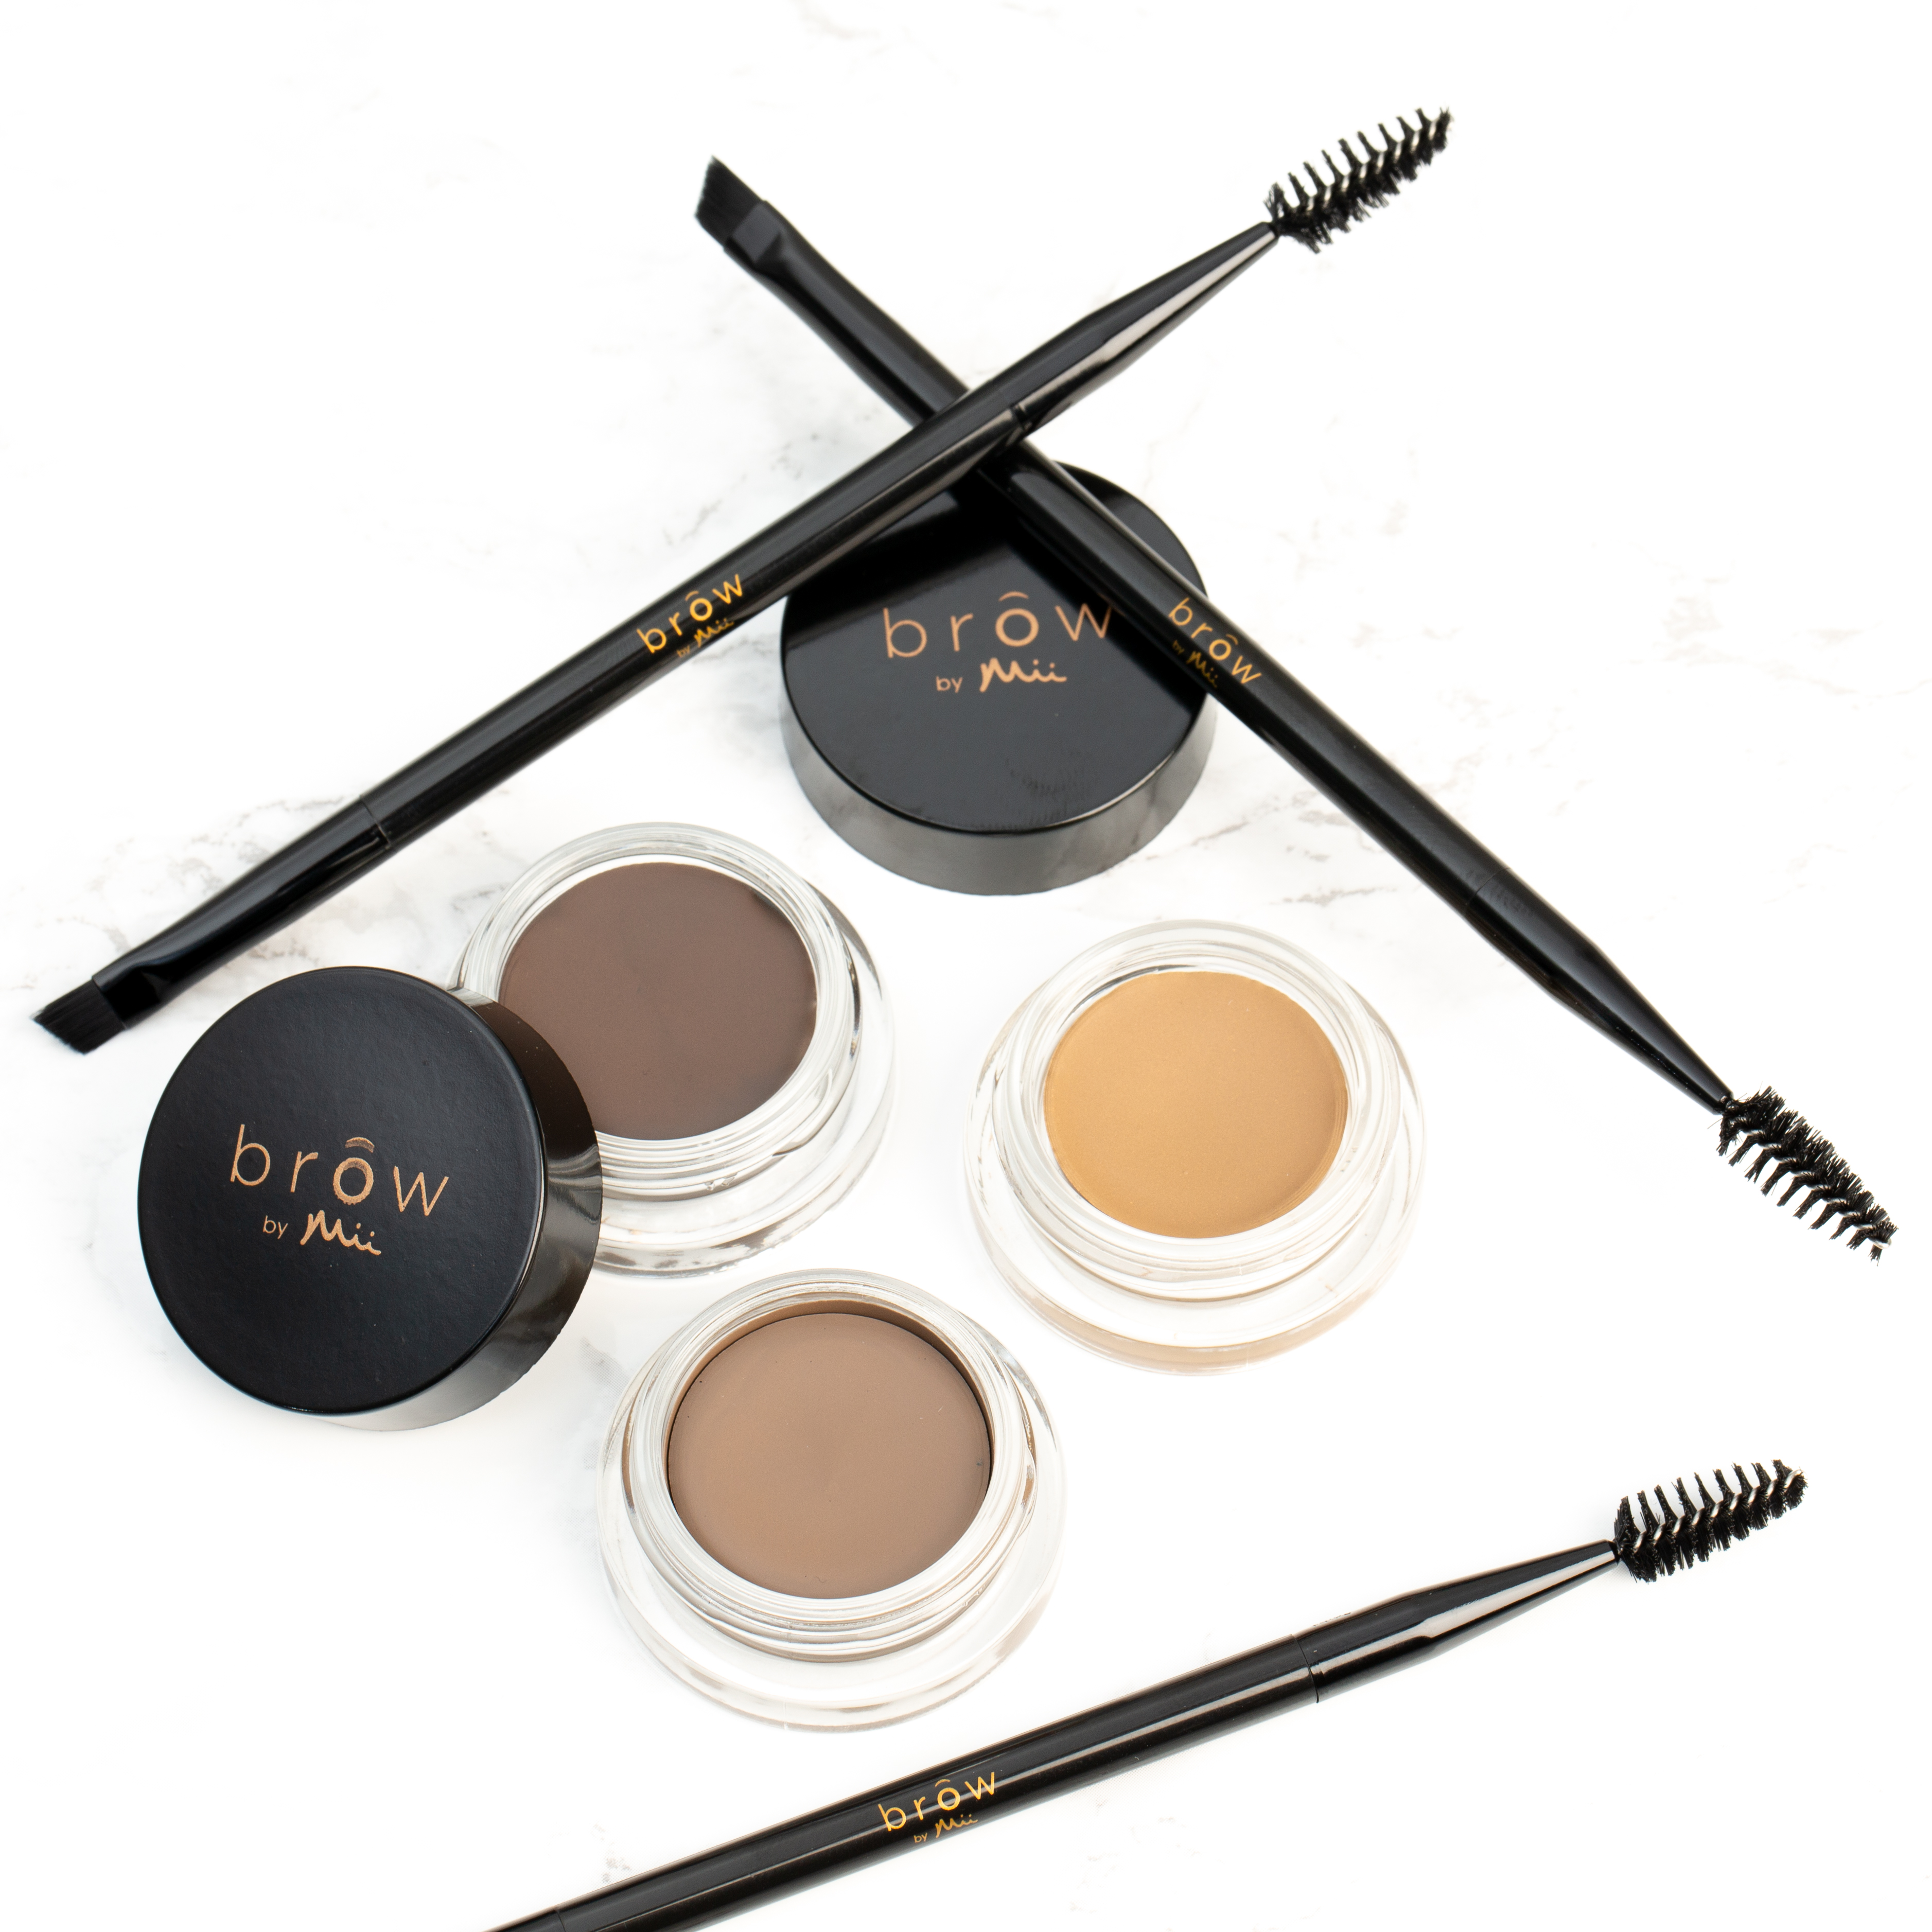 Designer Brow Duo Group